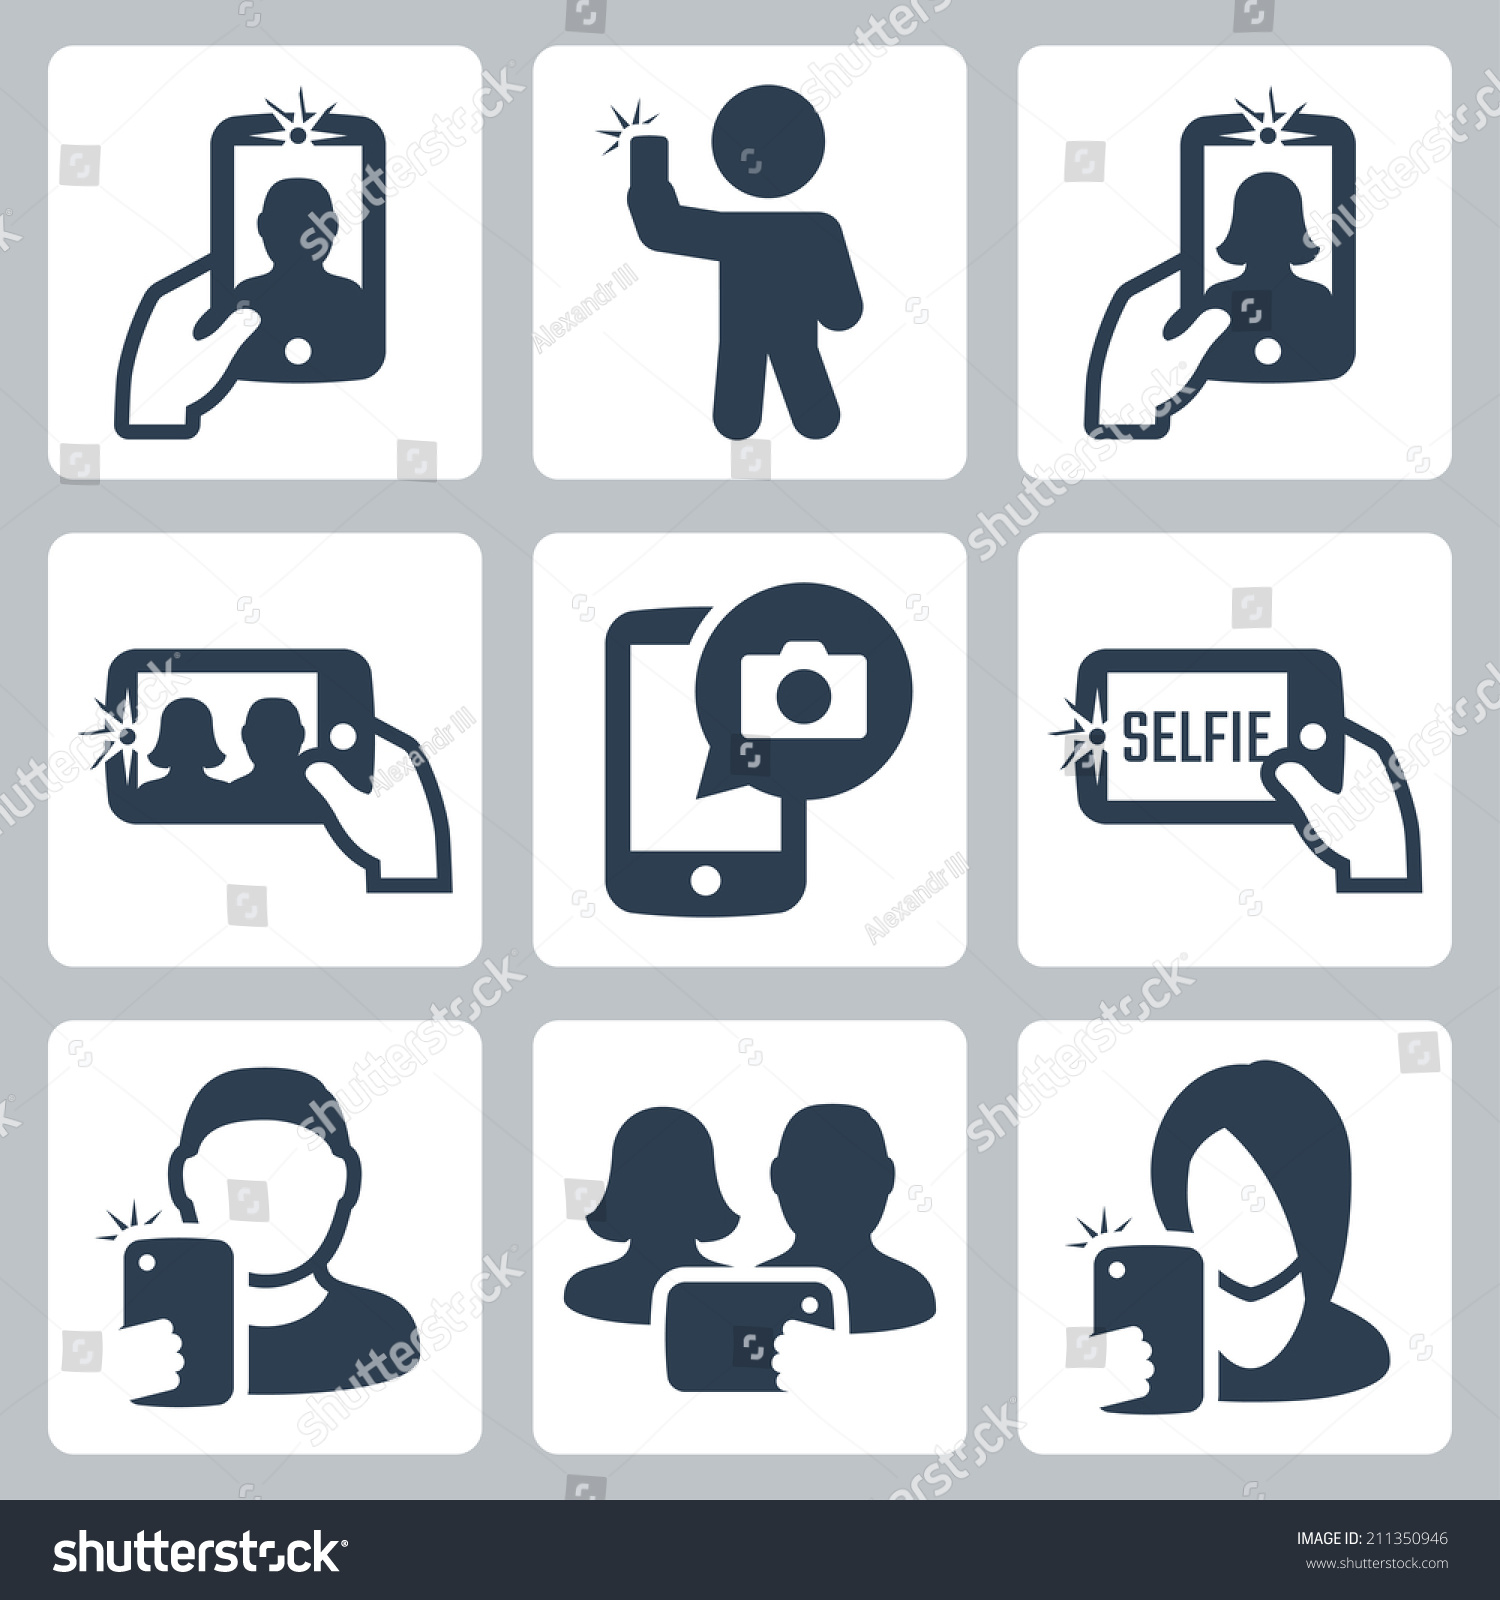 Selfie Related Vector Icons Set - 211350946 : Shutterstock